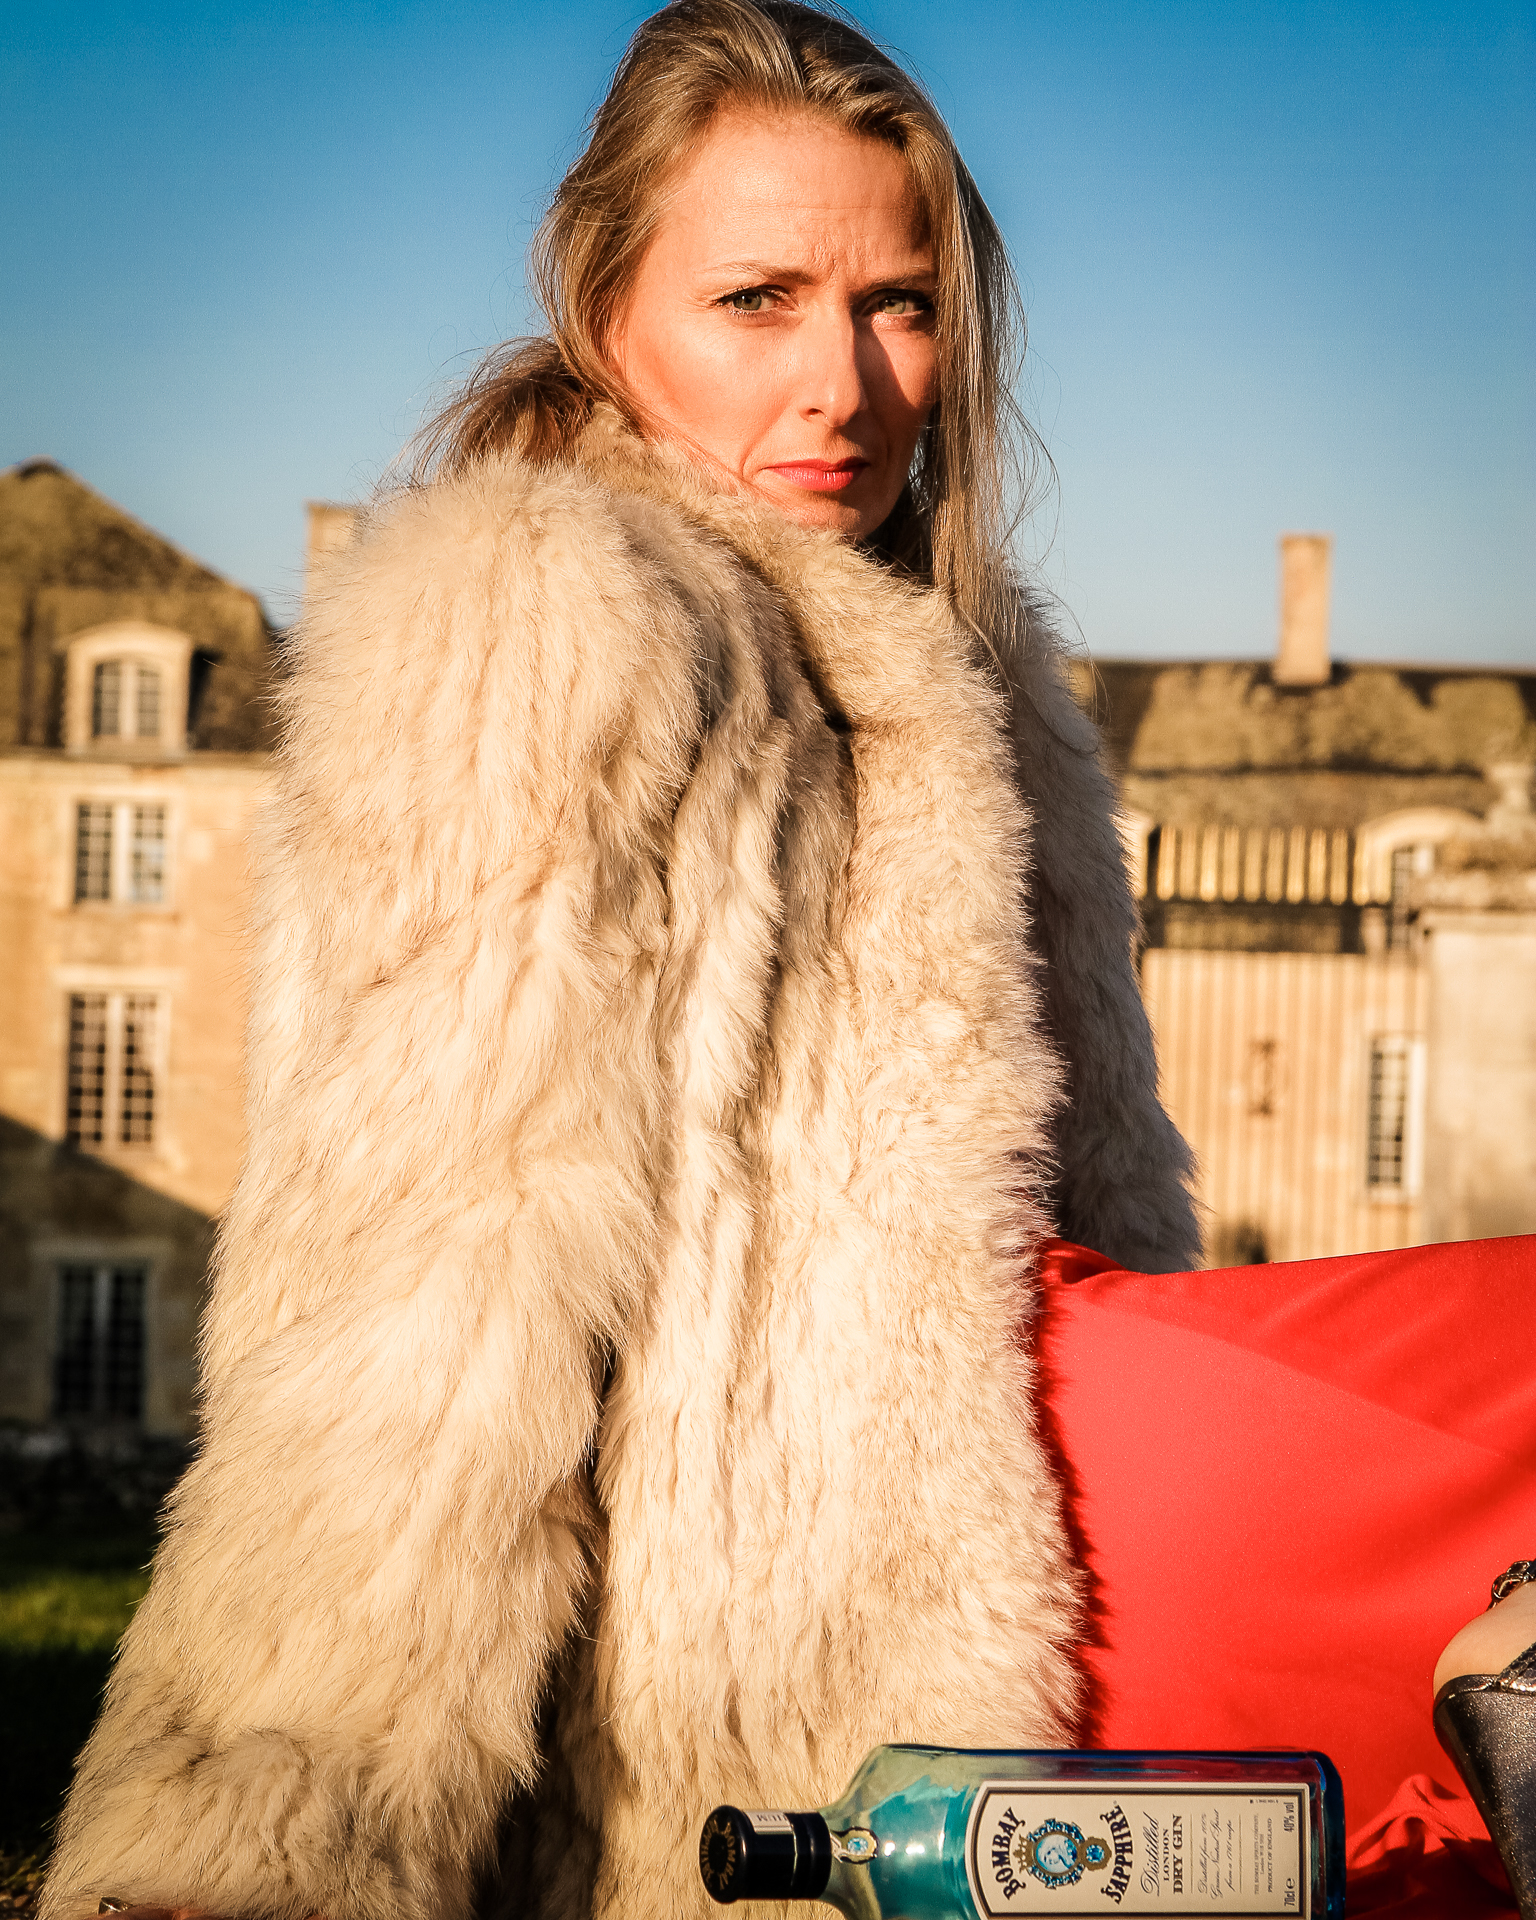 Liz is seen in a red evening gown with a fake fur coat, and black heels sat on the floor in front of a French Chateau, at dawn, with an empty Bombay Sapphire bottle laying in front of her. Her long blonde hair is unkempt, suggesting it was an 'eventful' night.